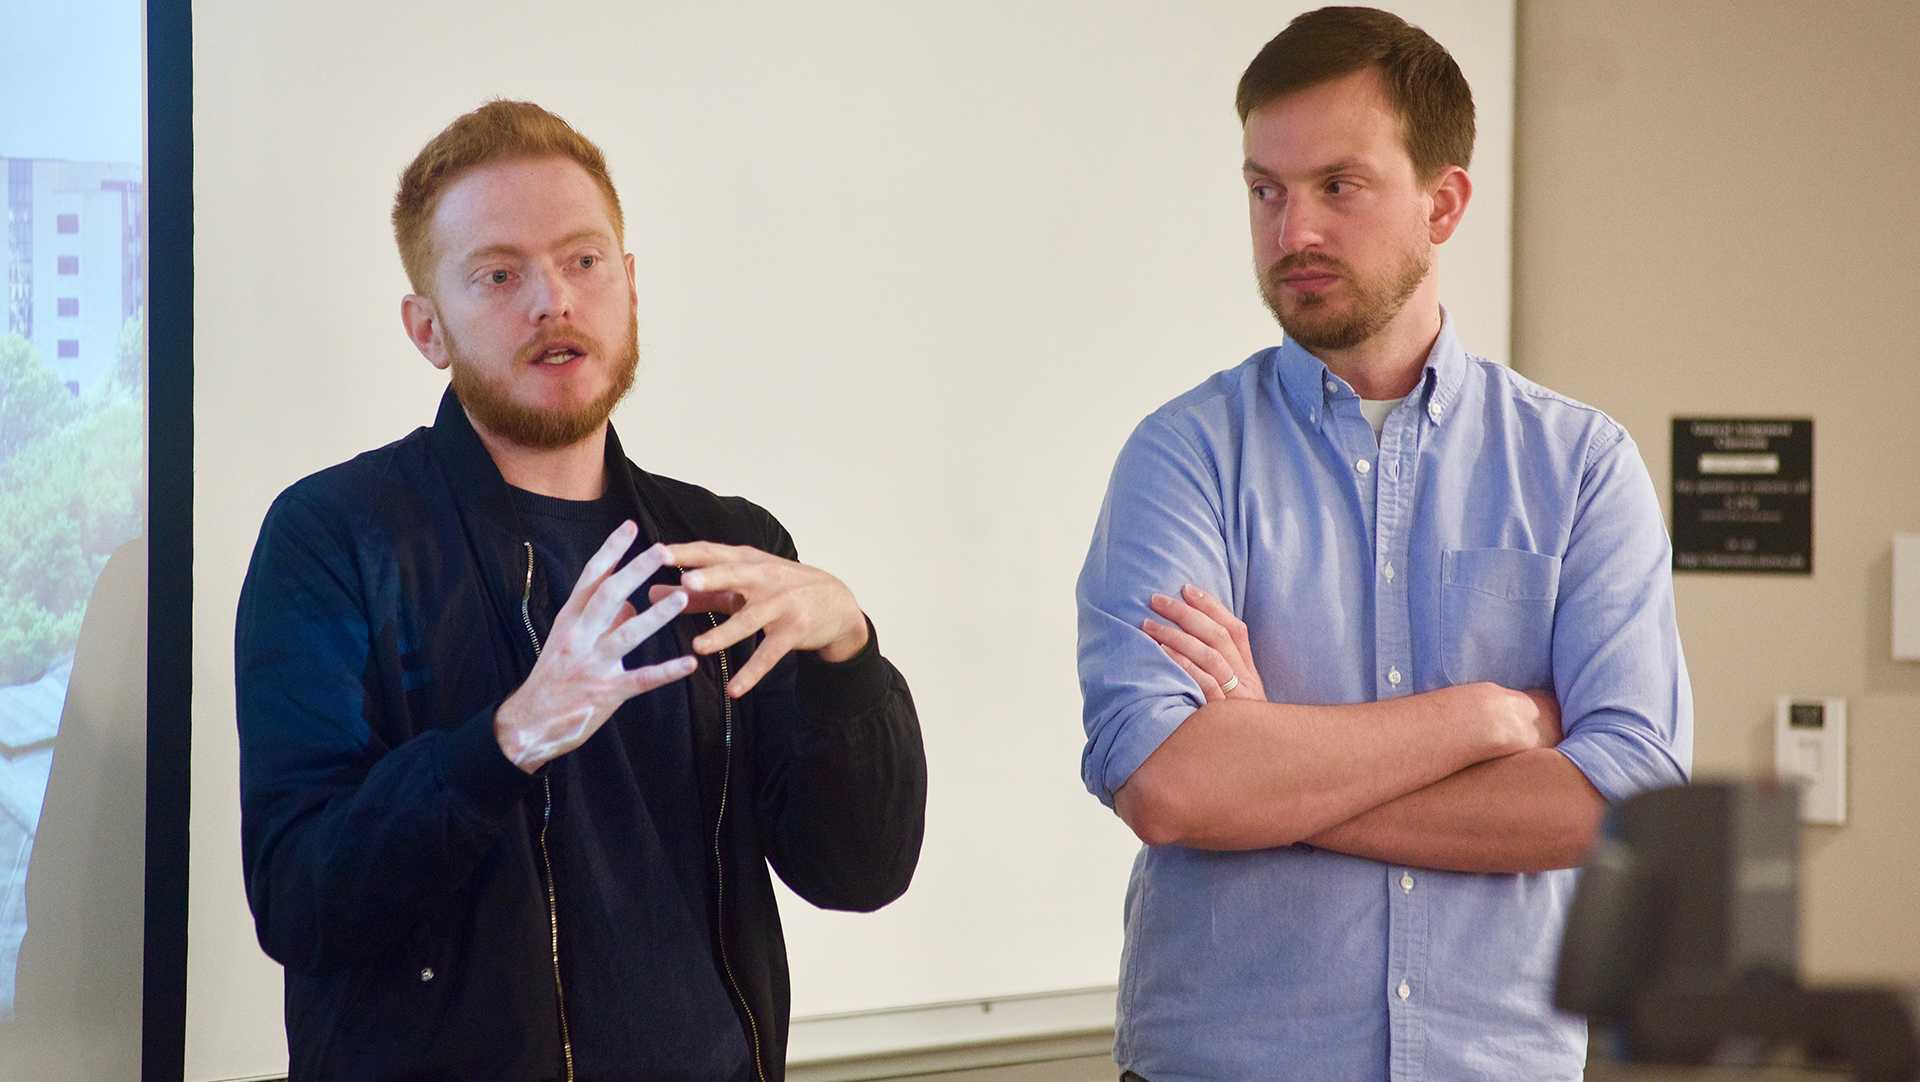 Scott Beck and Bryan Woods, UI alumni and co-writers of A Quiet Place, speak in the Pappajohn Business Building on Monday, April 9, 2018.